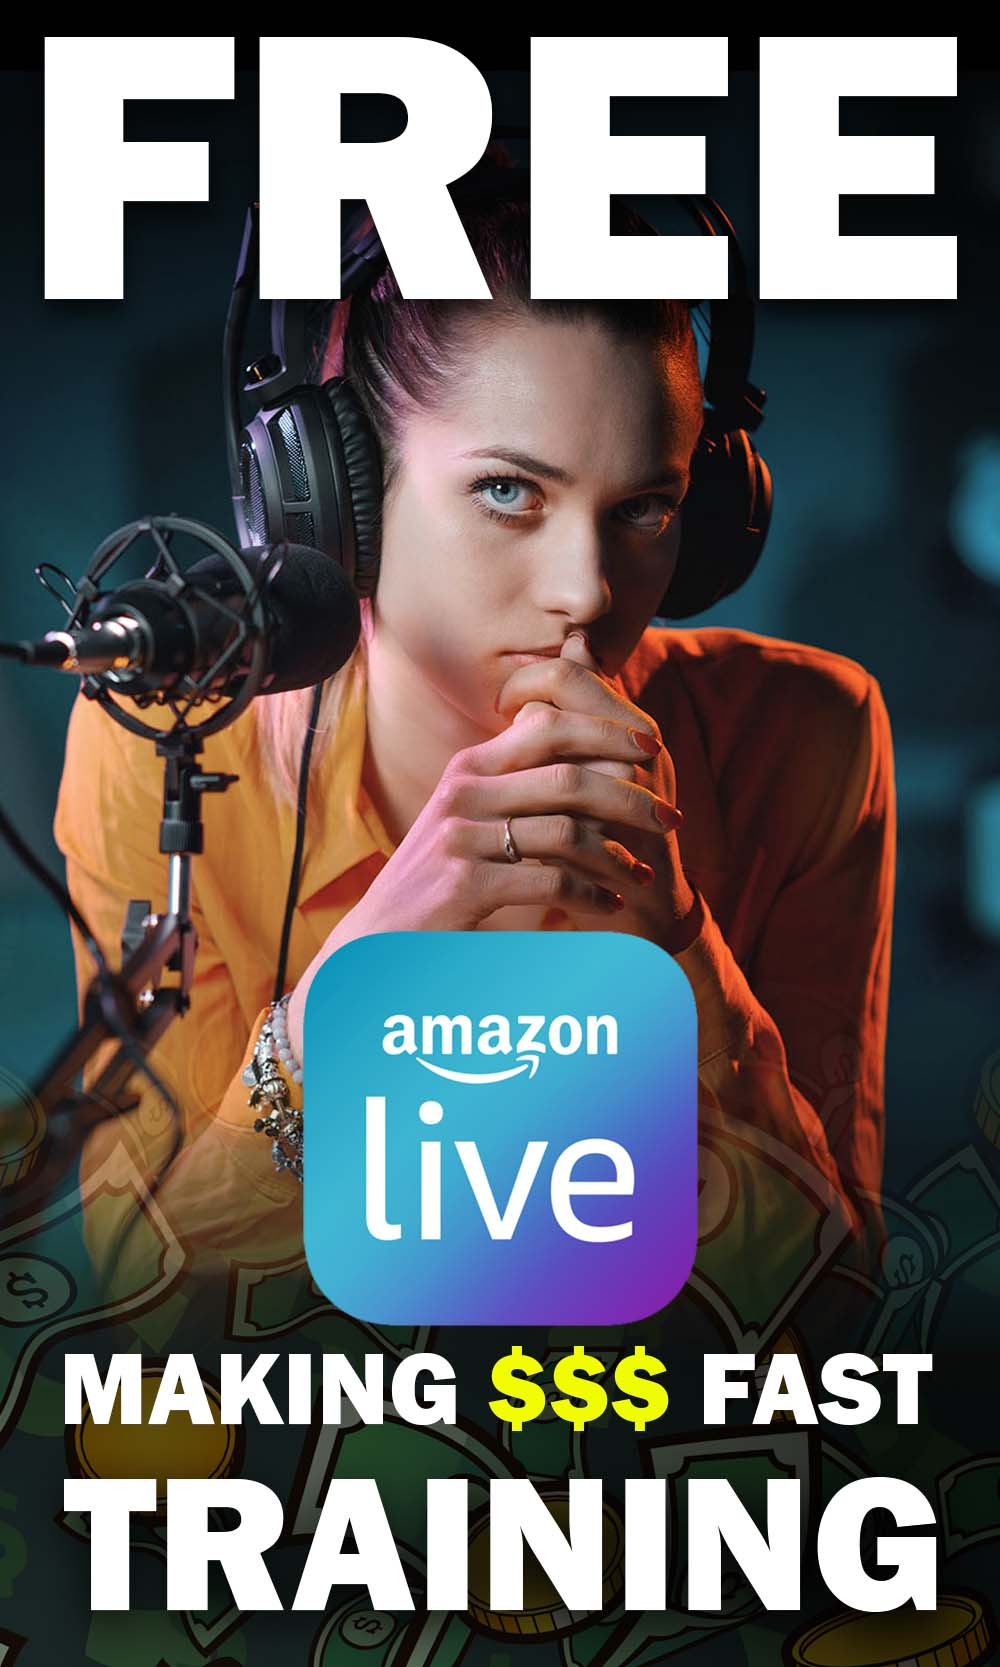 Learn How to Make Easy Money on Amazon Live - How to make Money on Amazon Live